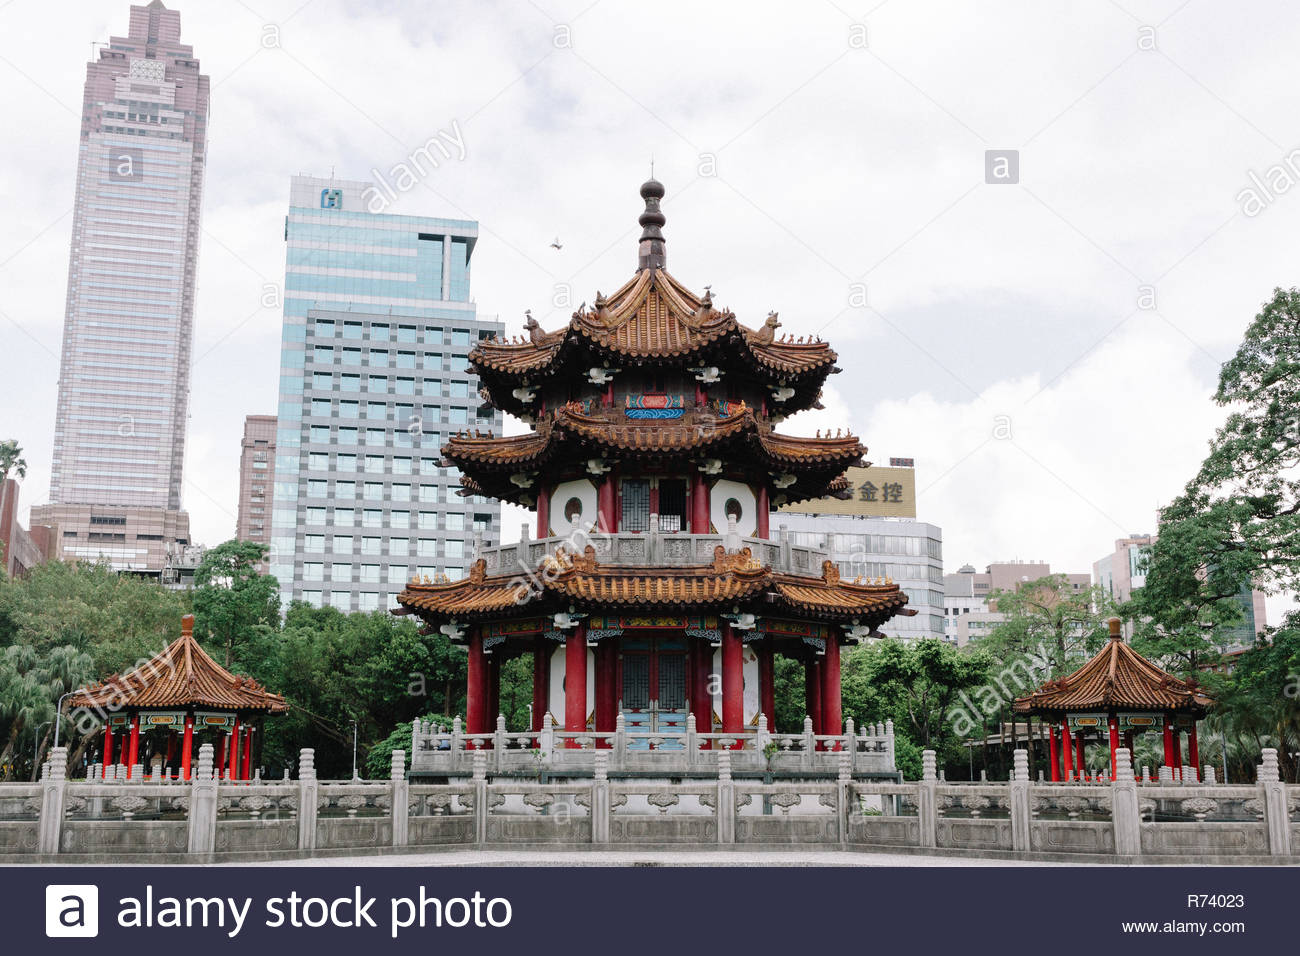 Park in Taipei, Taiwan, within a little temple where people can eat and sleep, debate and pray. - Stock Image